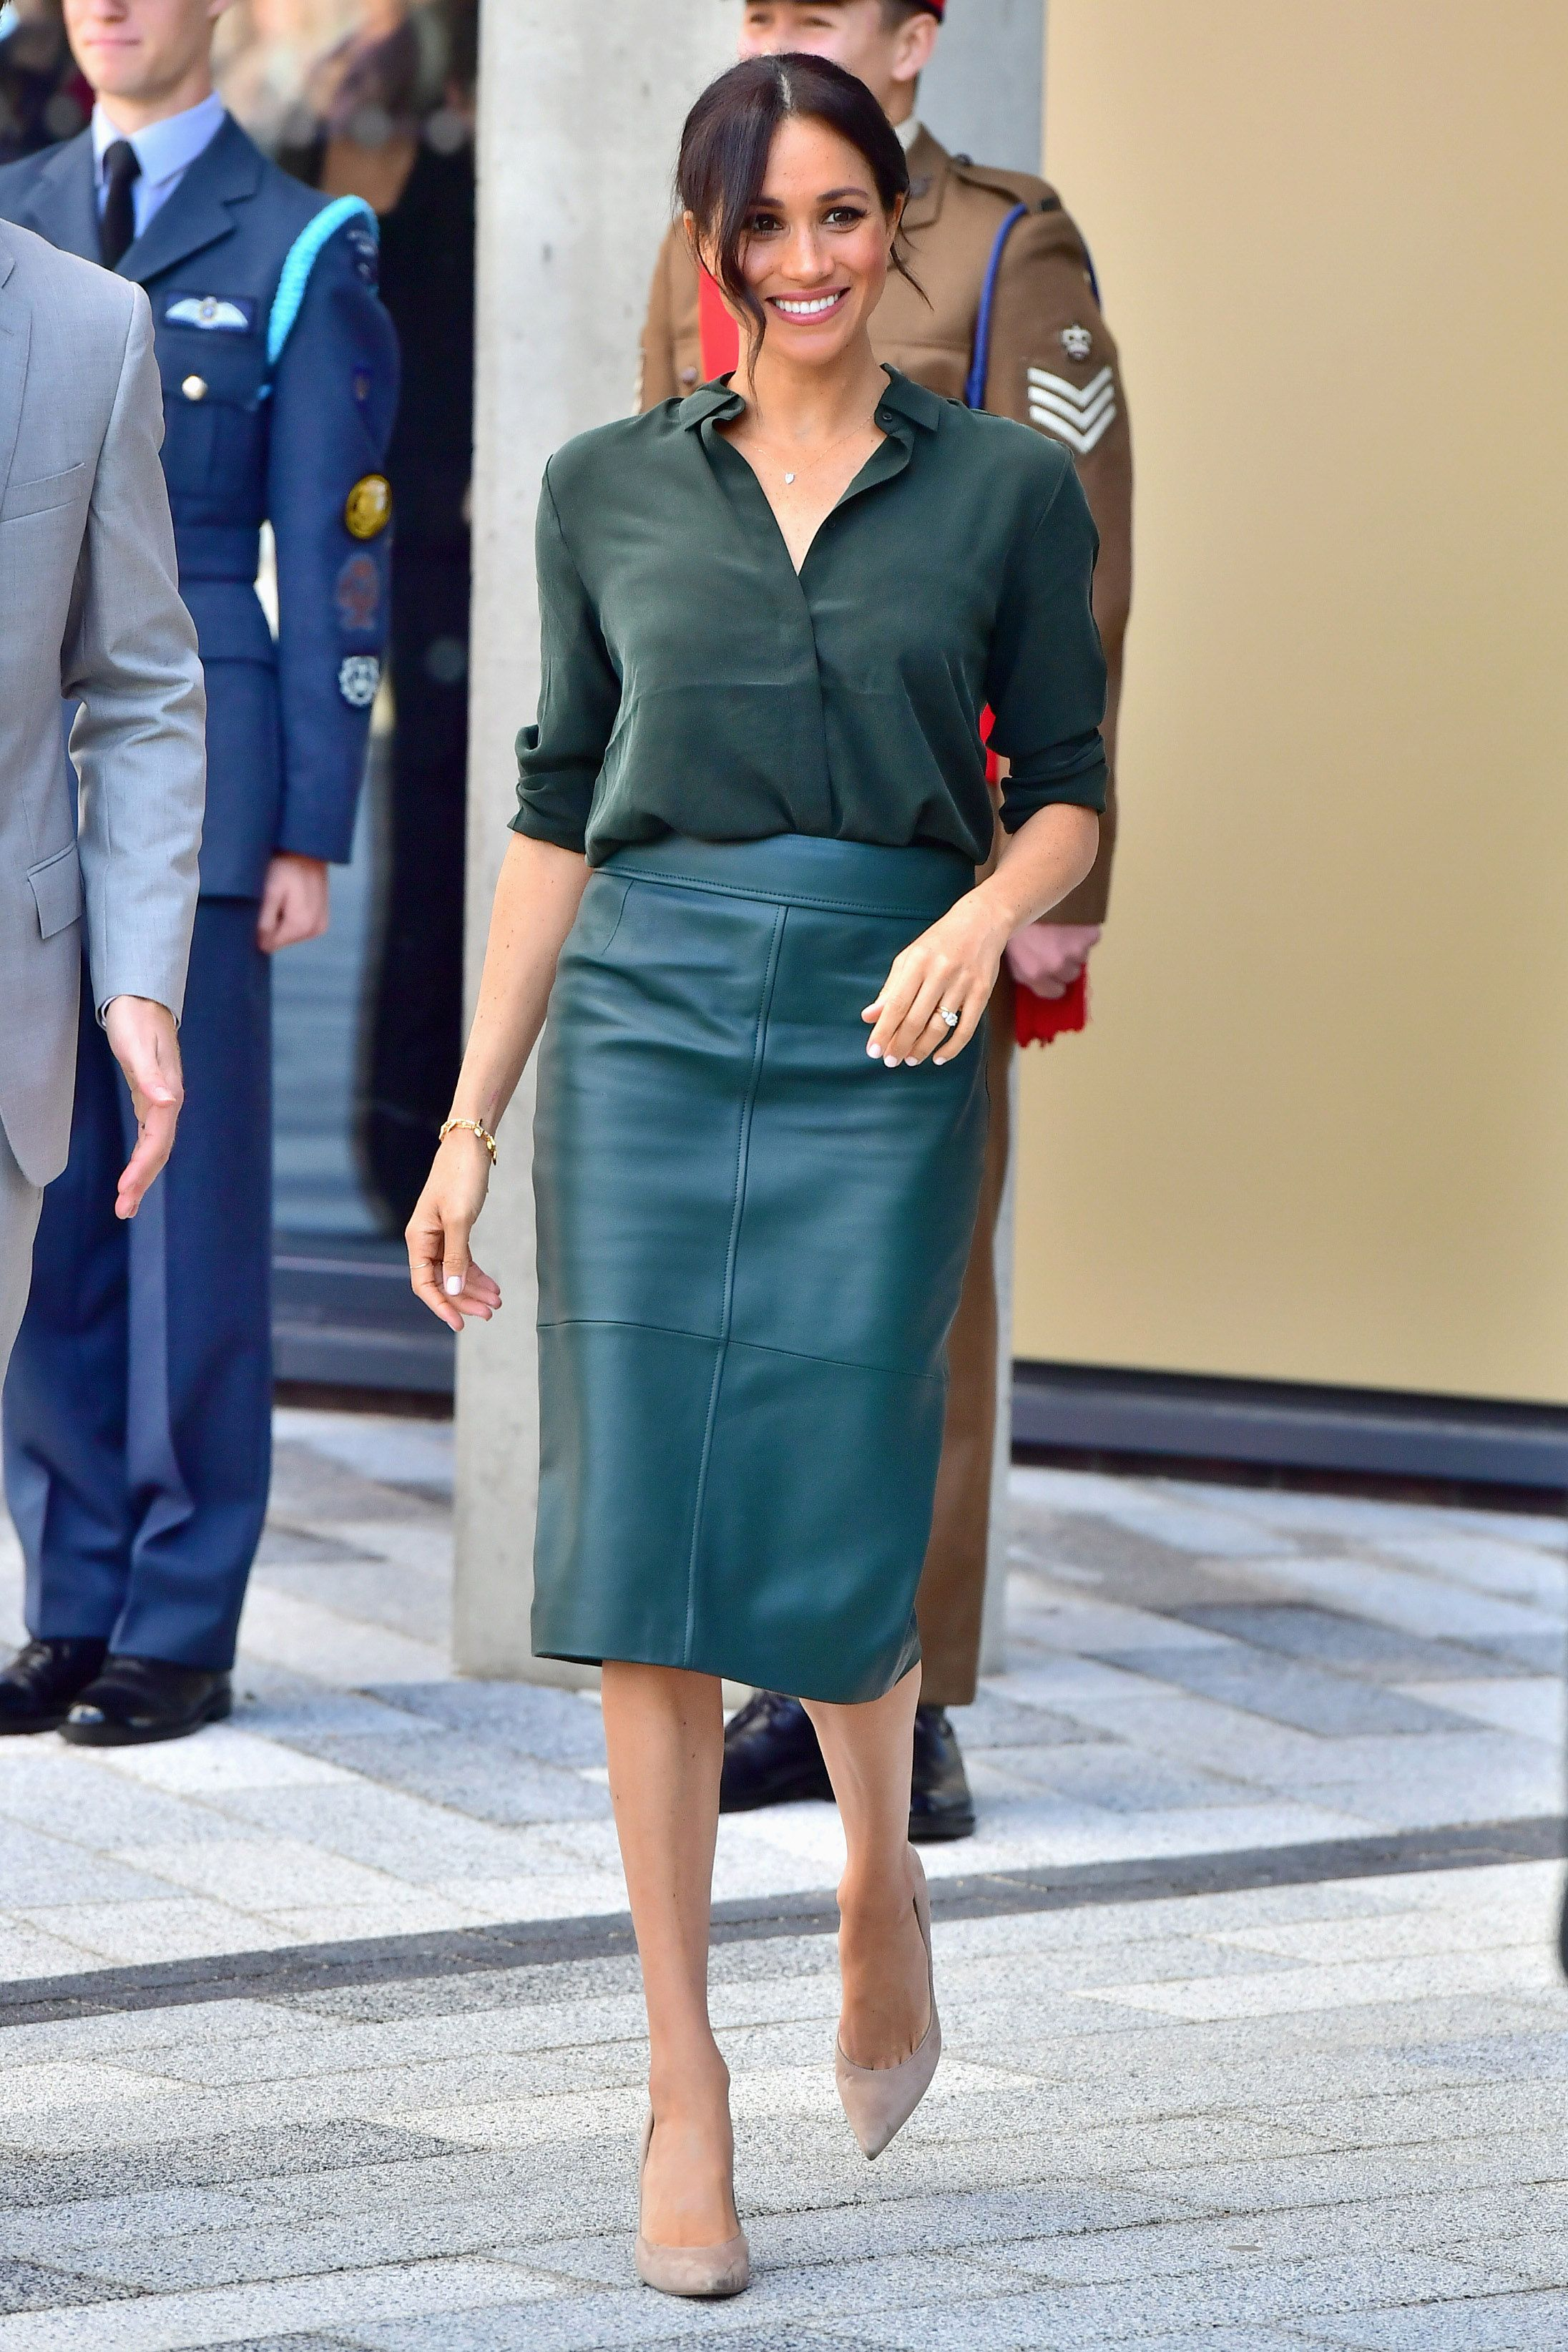 6854278df 100+ Best Meghan Markle Outfits of All Time - Meghan Markle Style Timeline